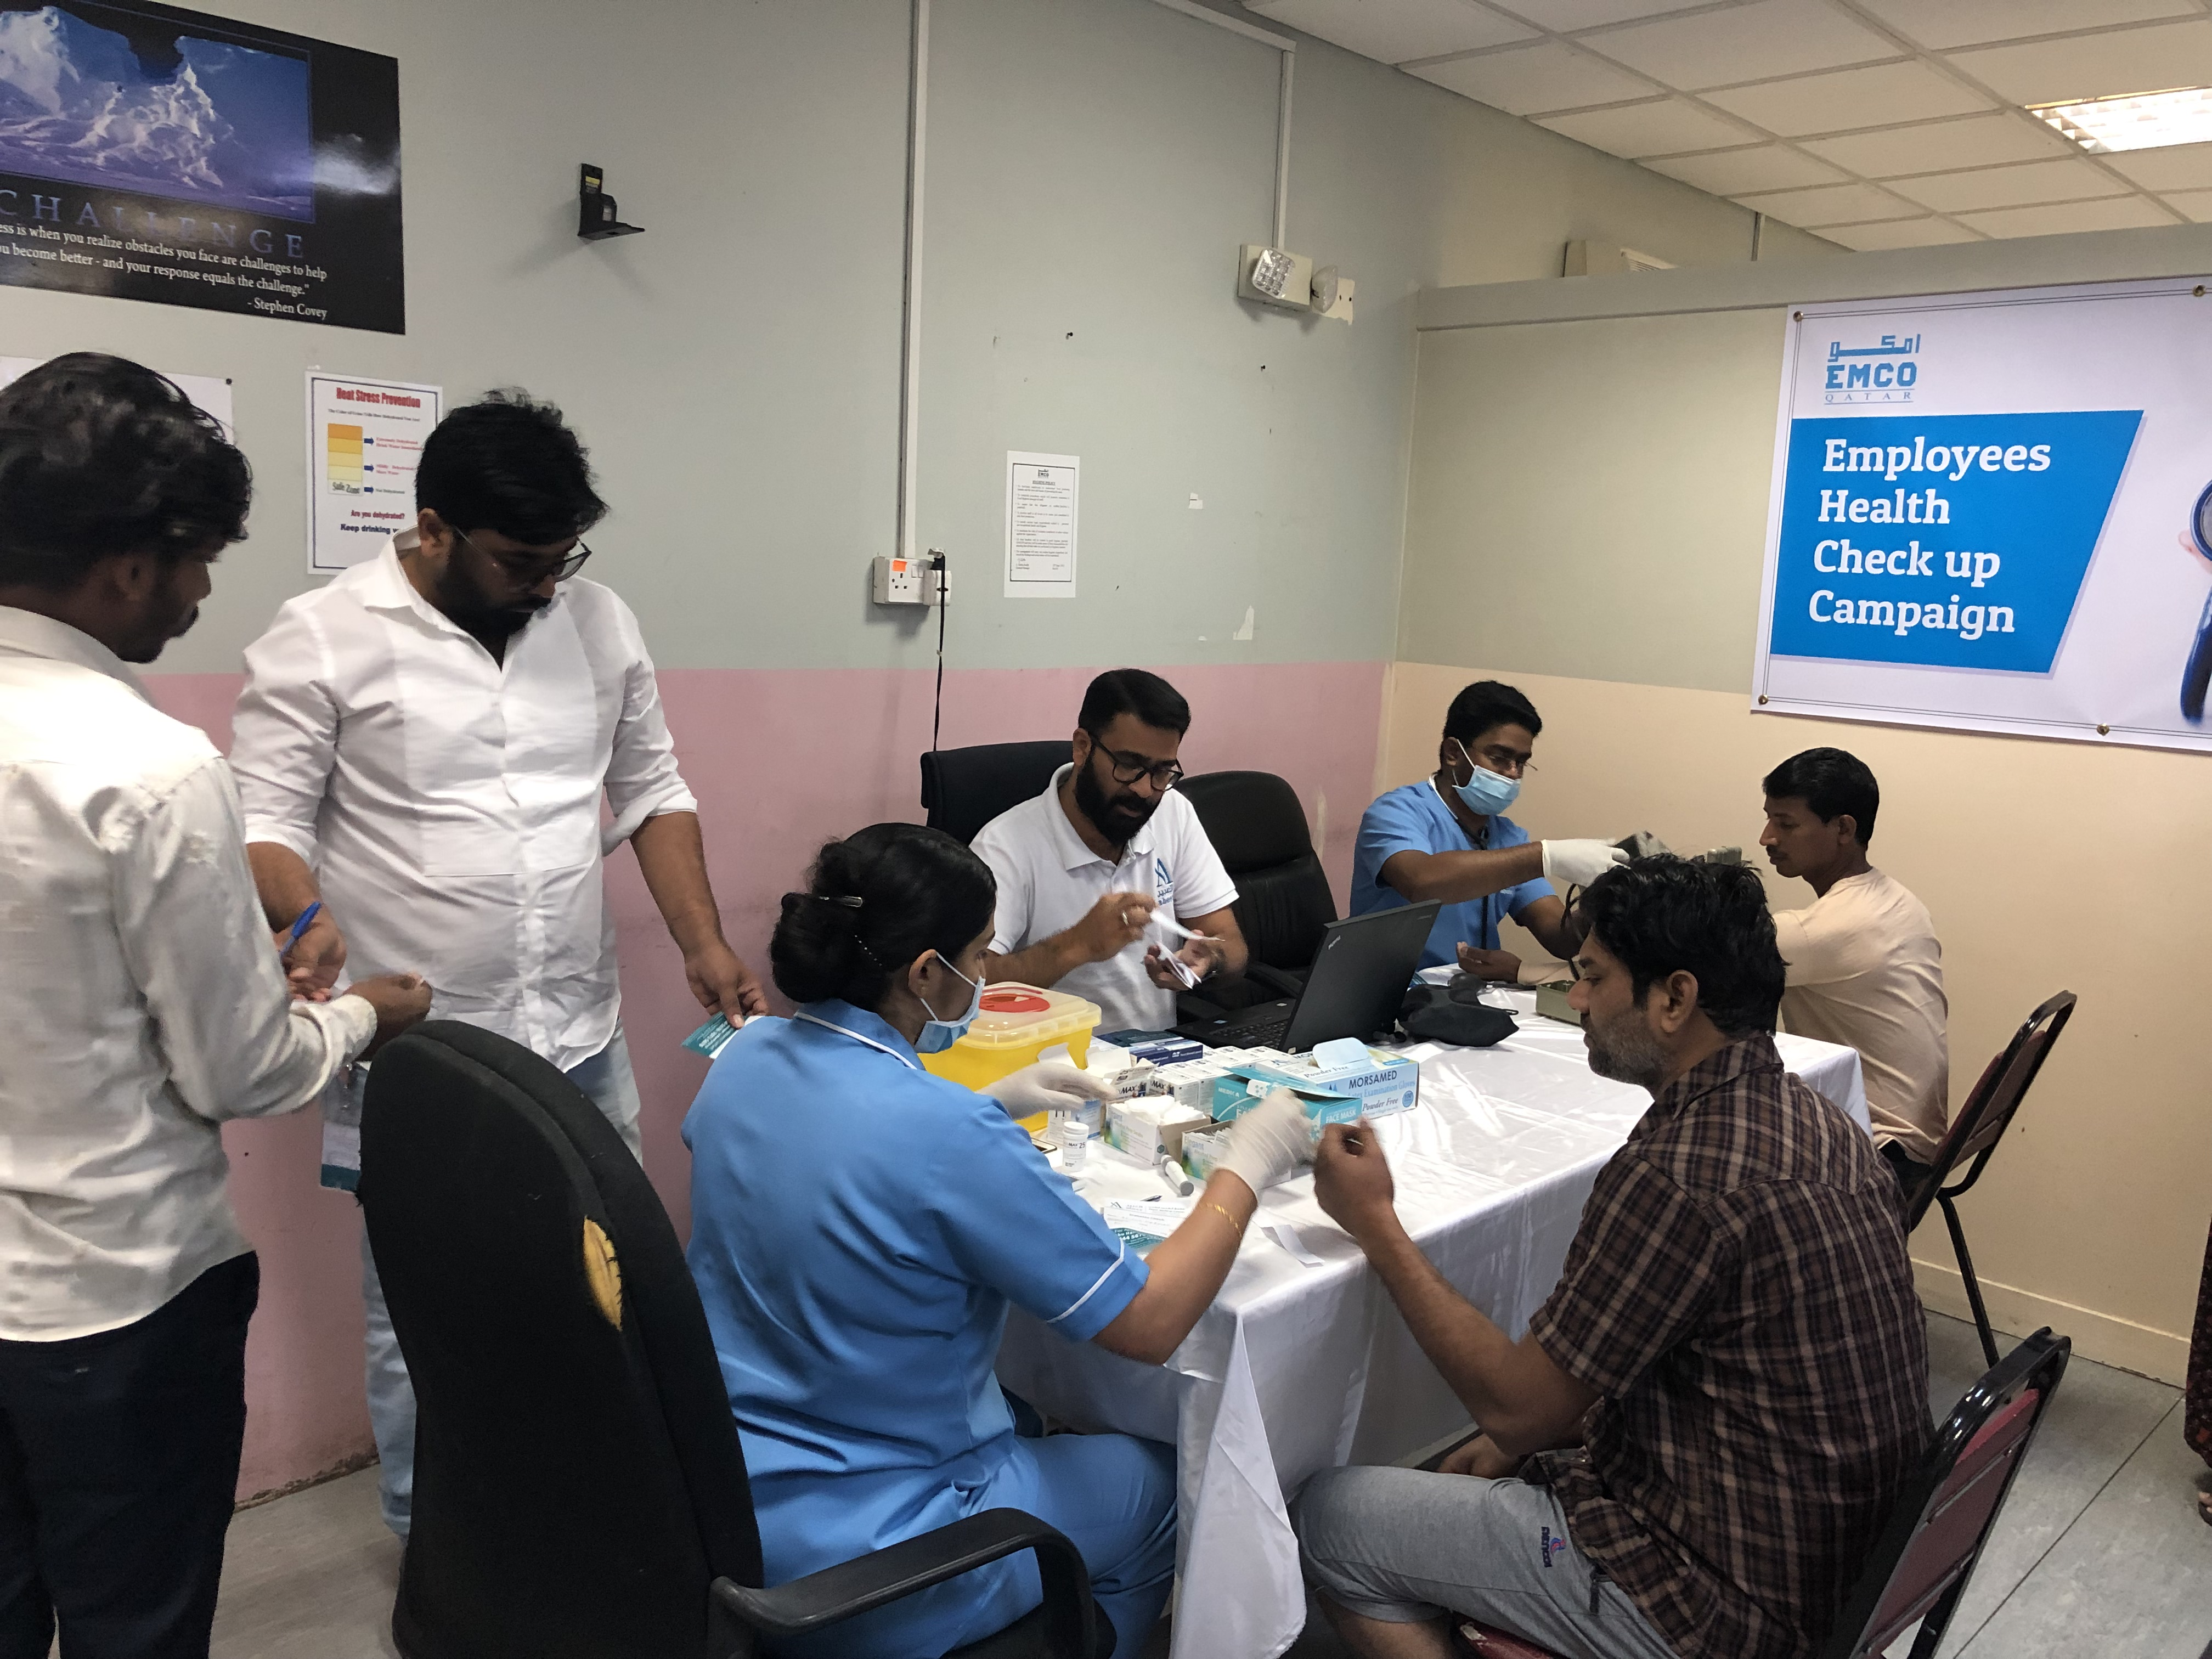 Employee's Health Checkup Campaign